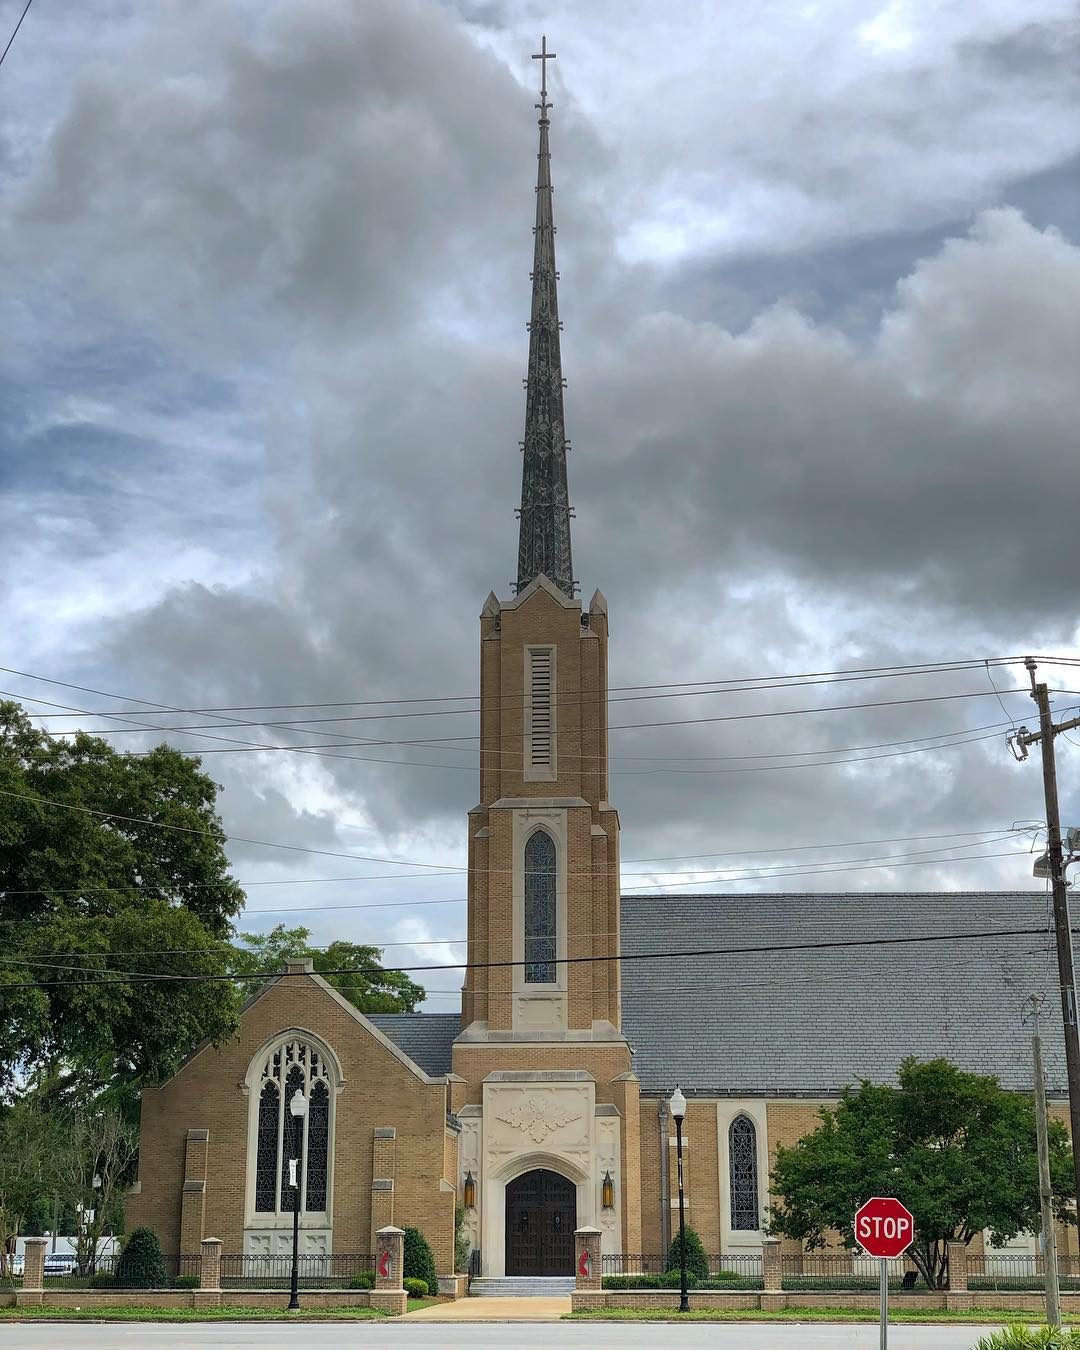 Trinity UMC, in Sumter, was founded in 1827